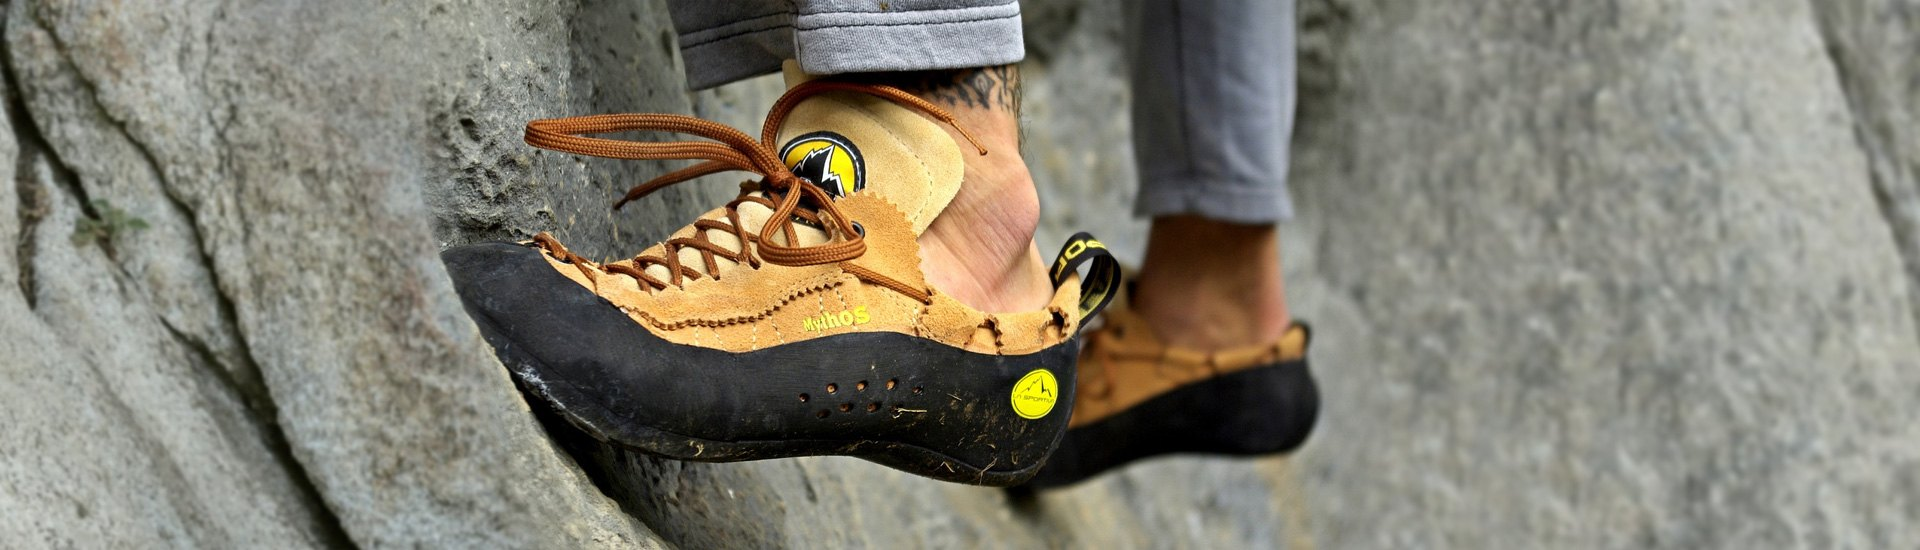 Best Climbing Shoes – Top Rated and Reviewed